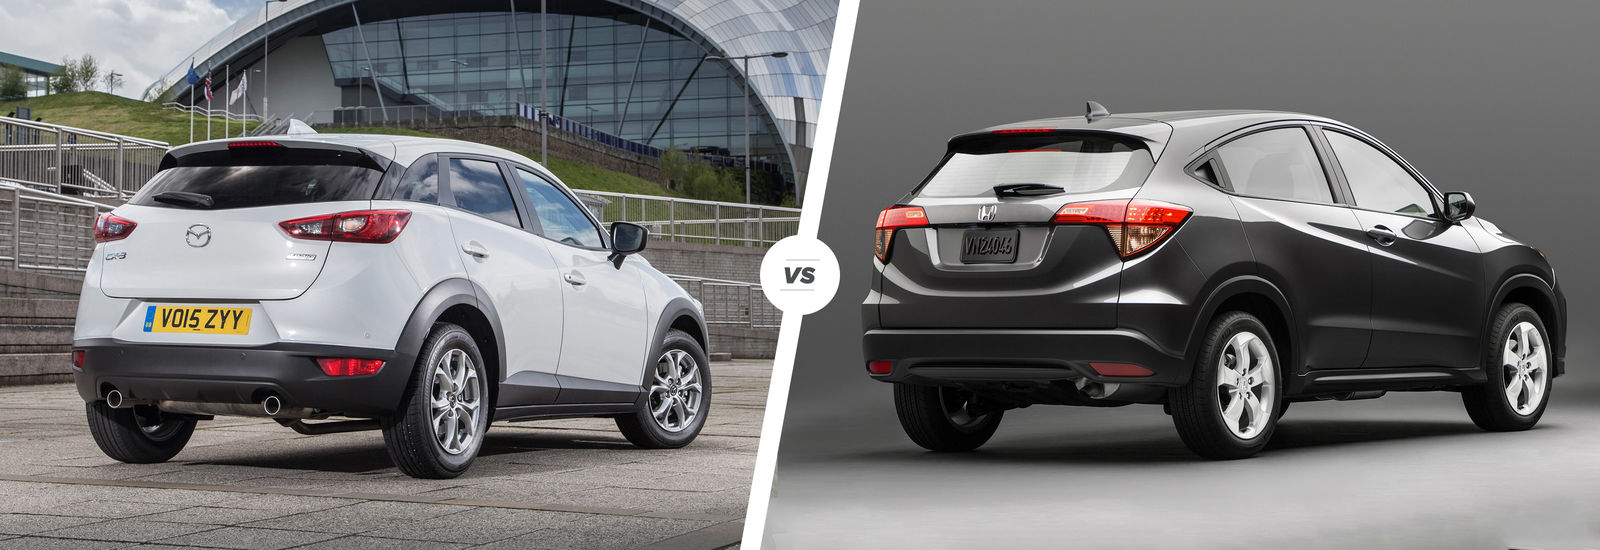 Cx 3 Vs Hrv >> Mazda Cx 3 Vs Honda Hr V Crossover Clash Carwow